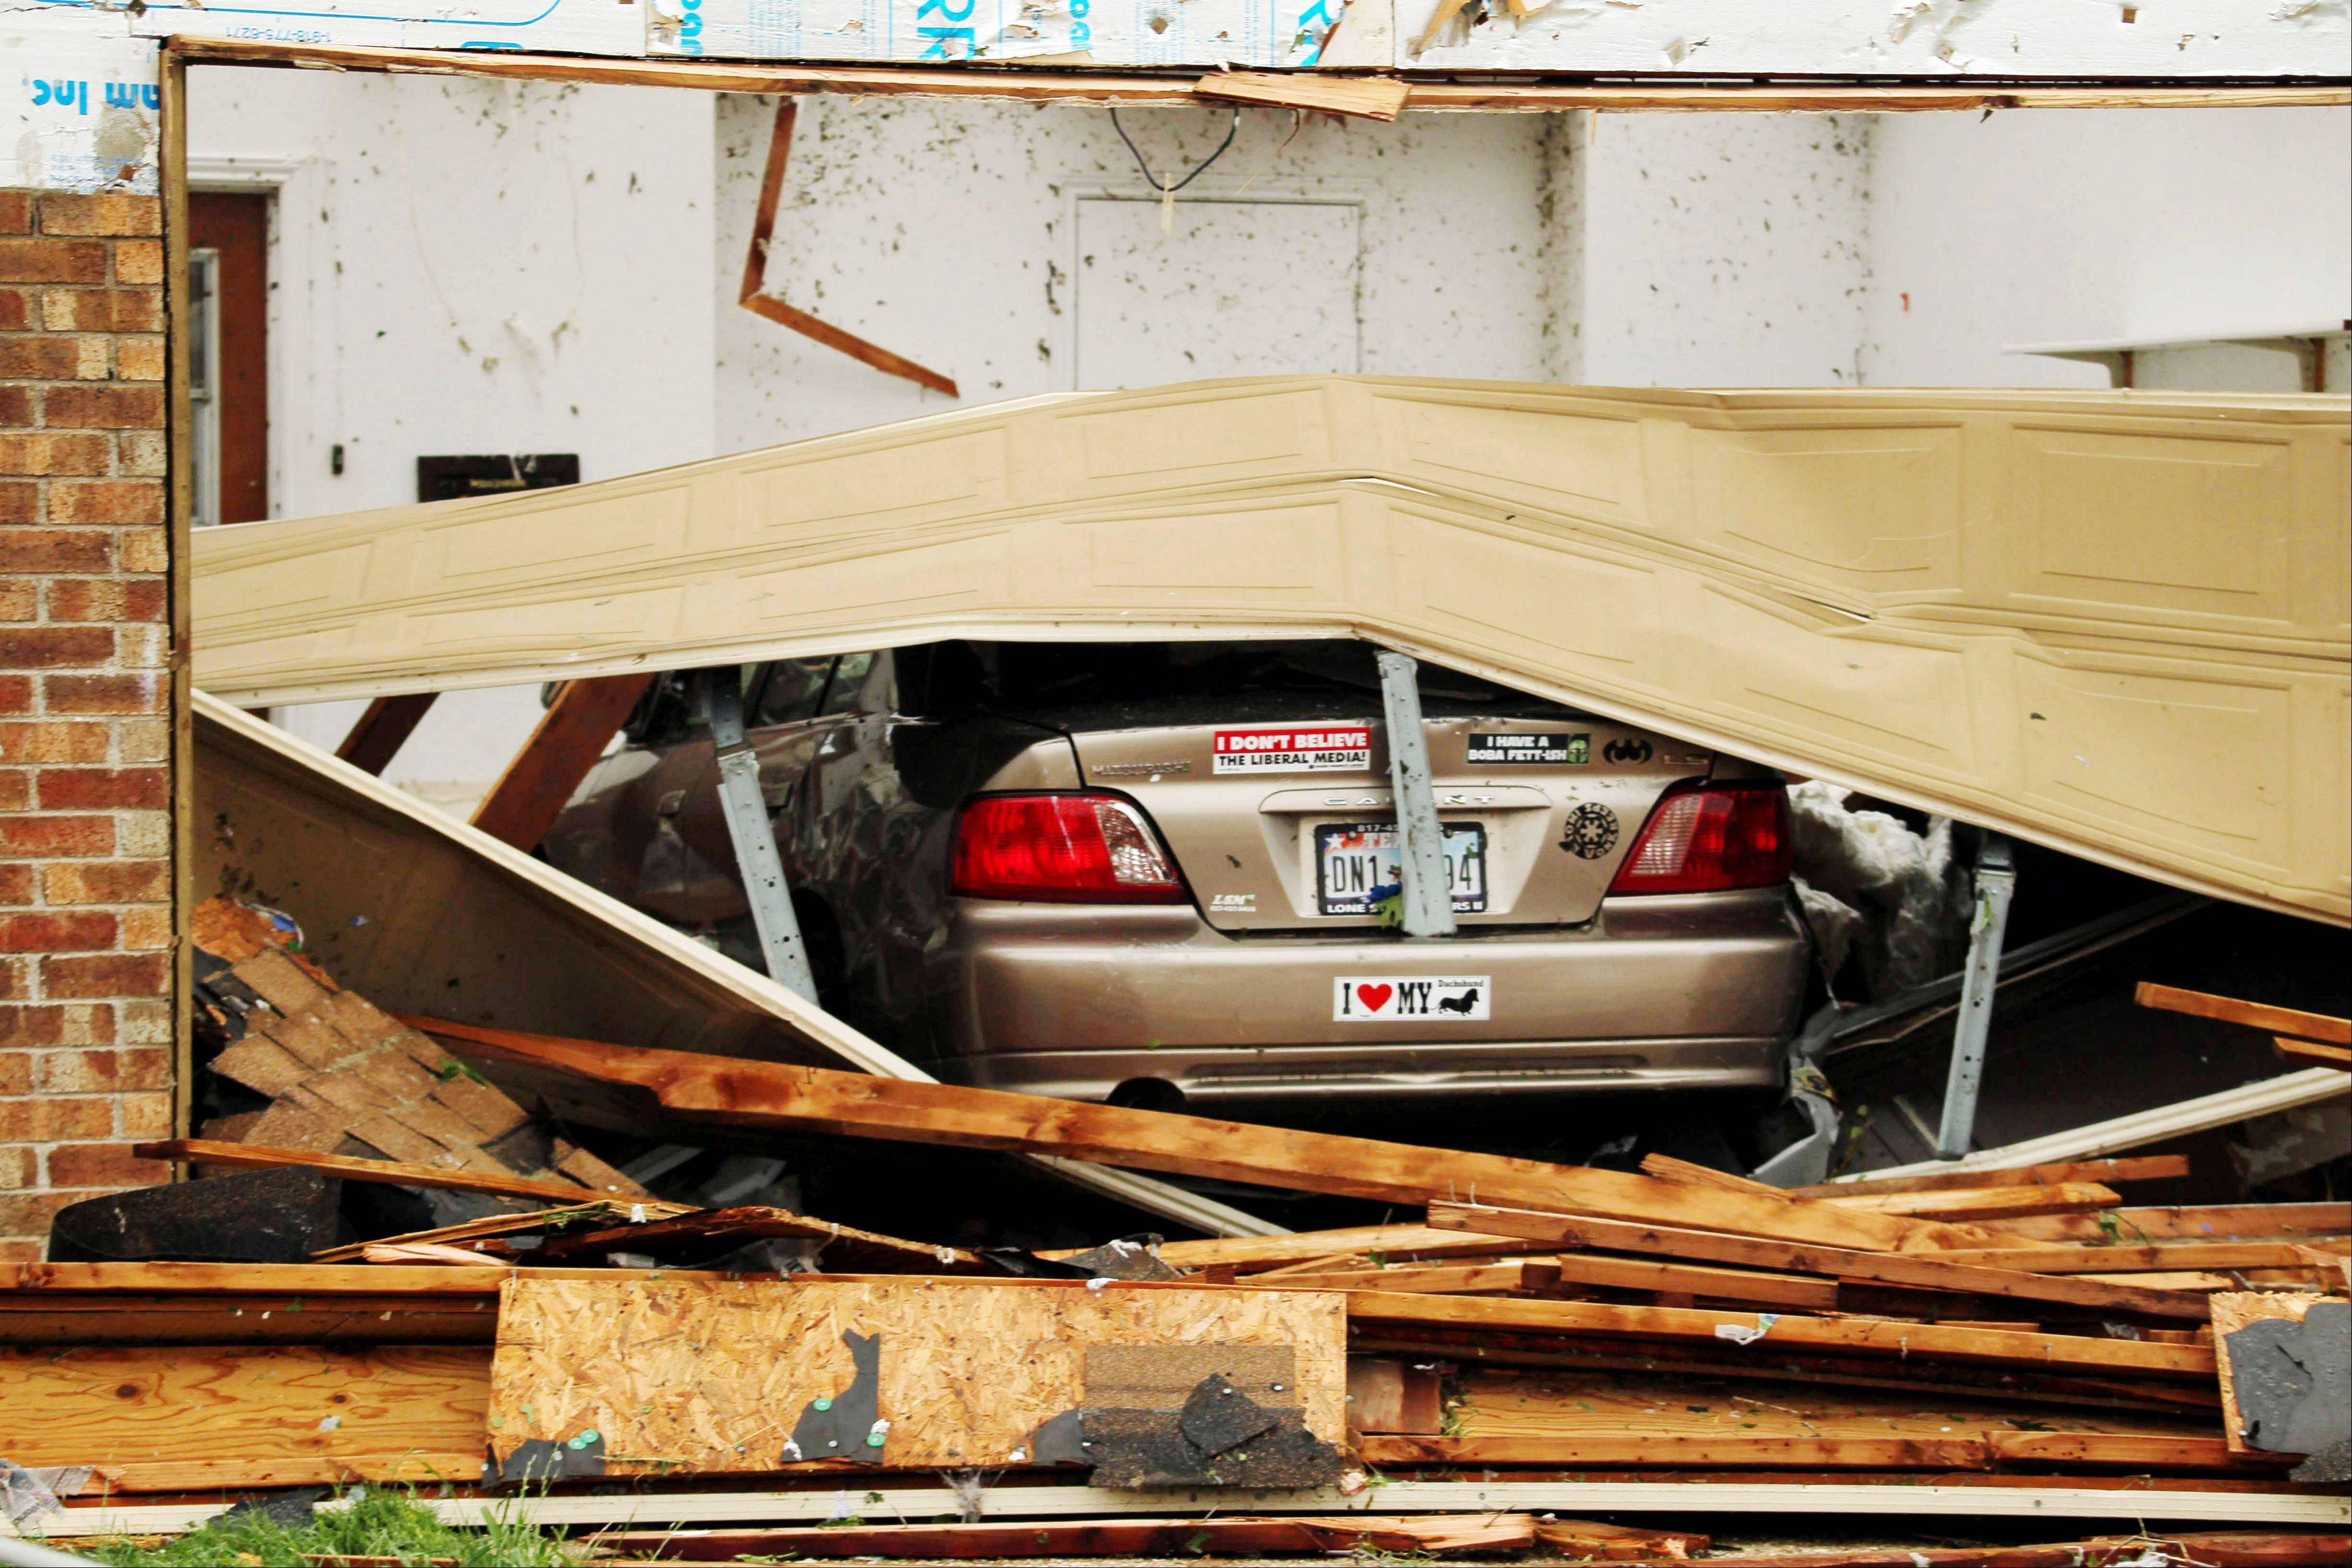 A car is seen in a damaged home after Wednesday's tornado in Cleburne, Texas on Thursday, May 16, 2013. Ten tornadoes touched down in several small communities in Texas overnight, leaving at least six people dead, dozens injured and hundreds homeless. Emergency responders were still searching for missing people Thursday afternoon.